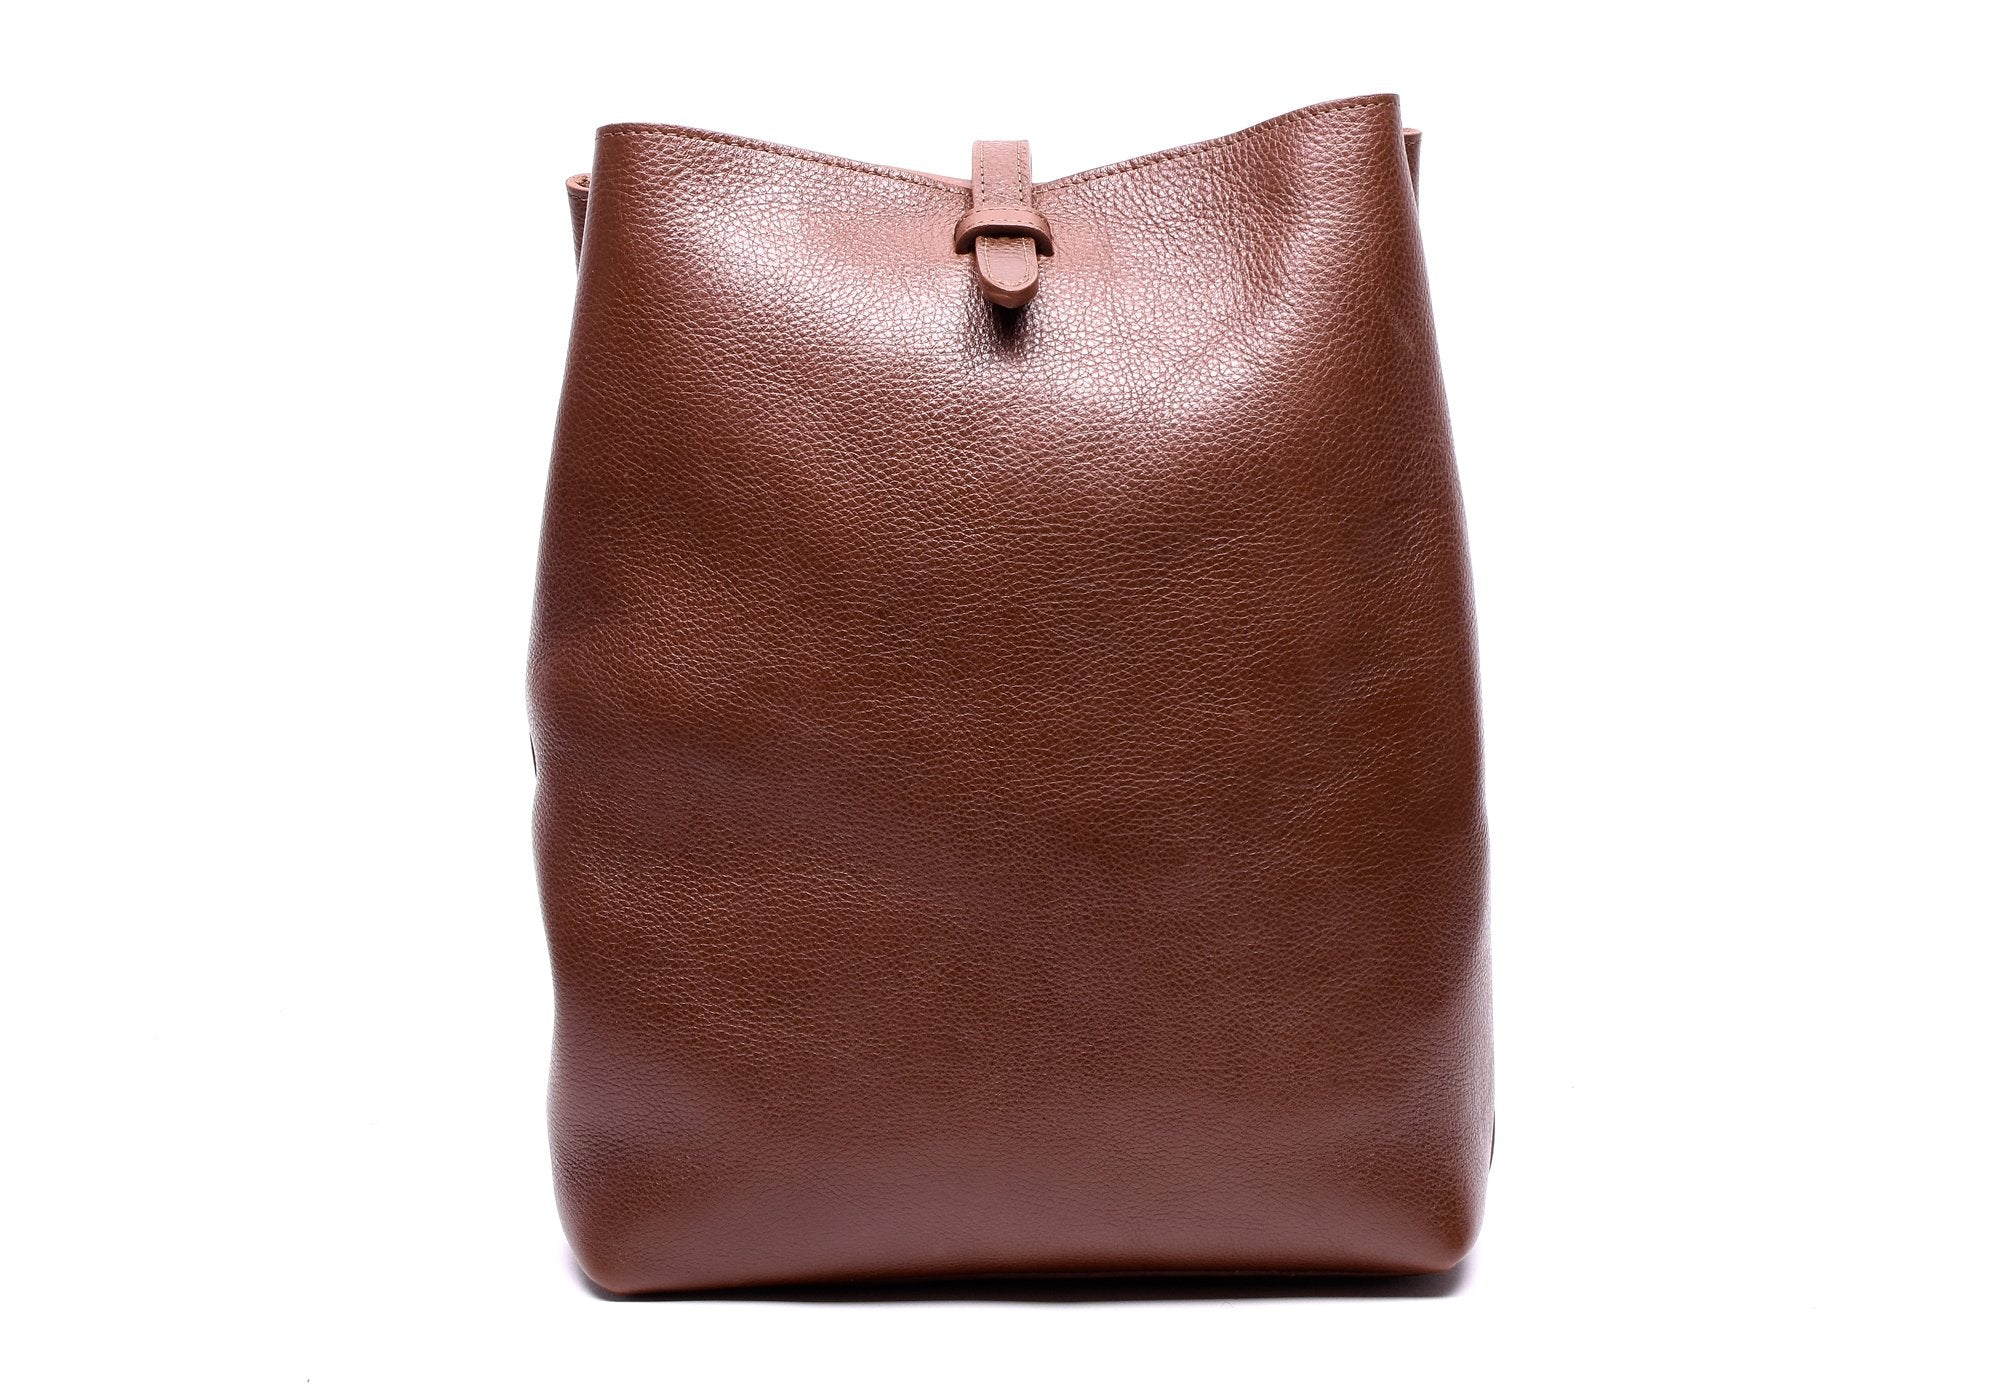 The Sling Backpack Chestnut